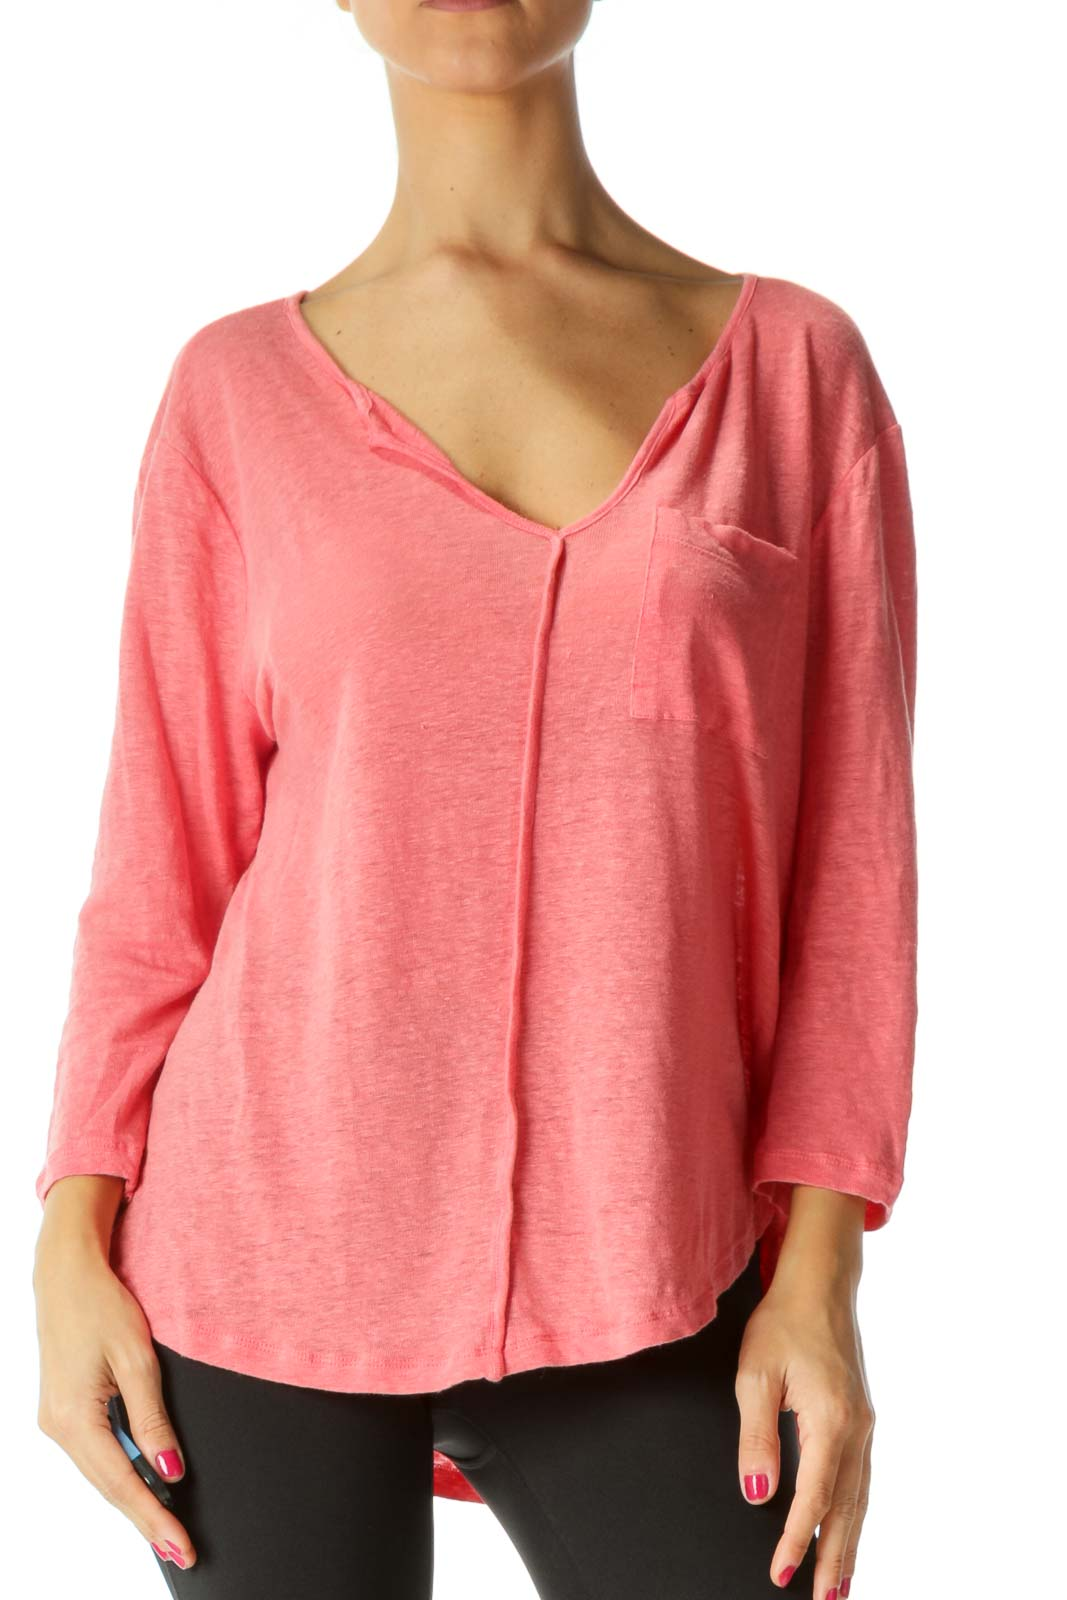 Pink V-Neck Breast Pocket 3/4 Sleeve Knit Top